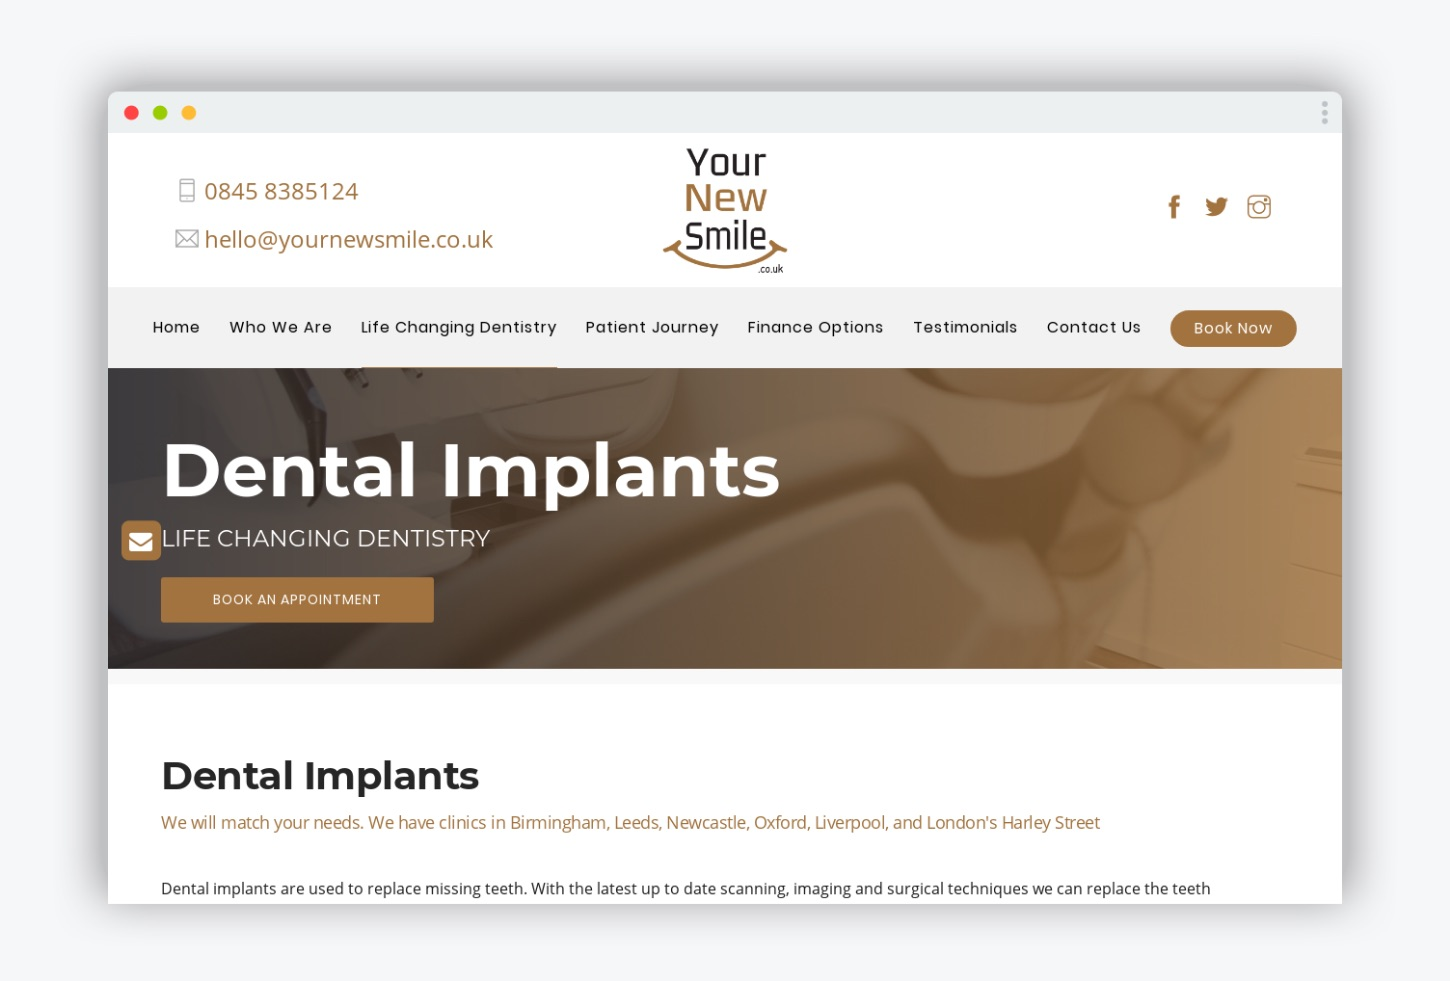 Your New Smile Dental Implants page